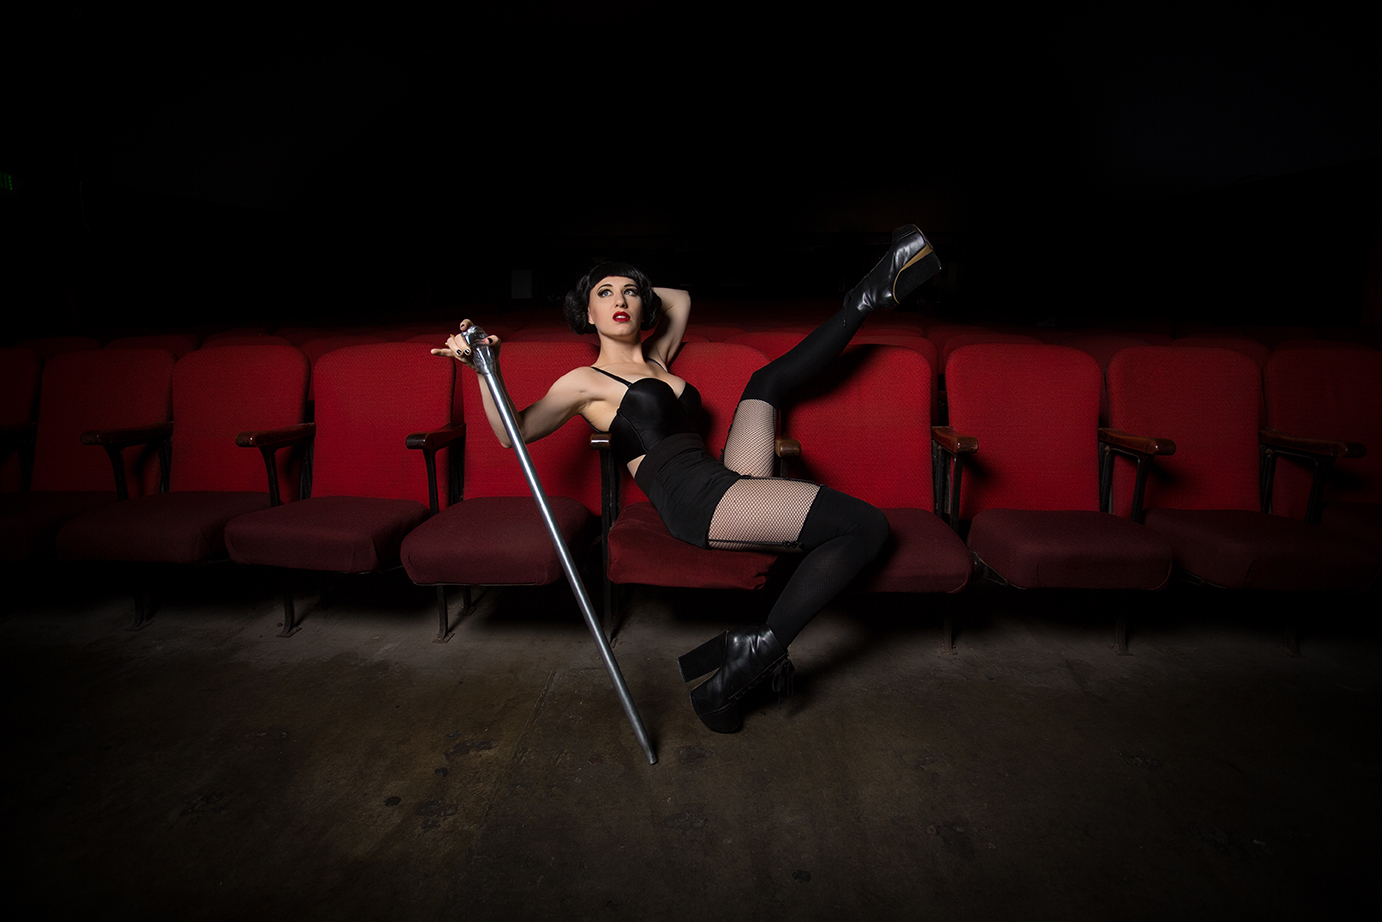 Cabaret - Misfit Cabaret's Love Letter to Theater, Musicals and Lizza Minelli